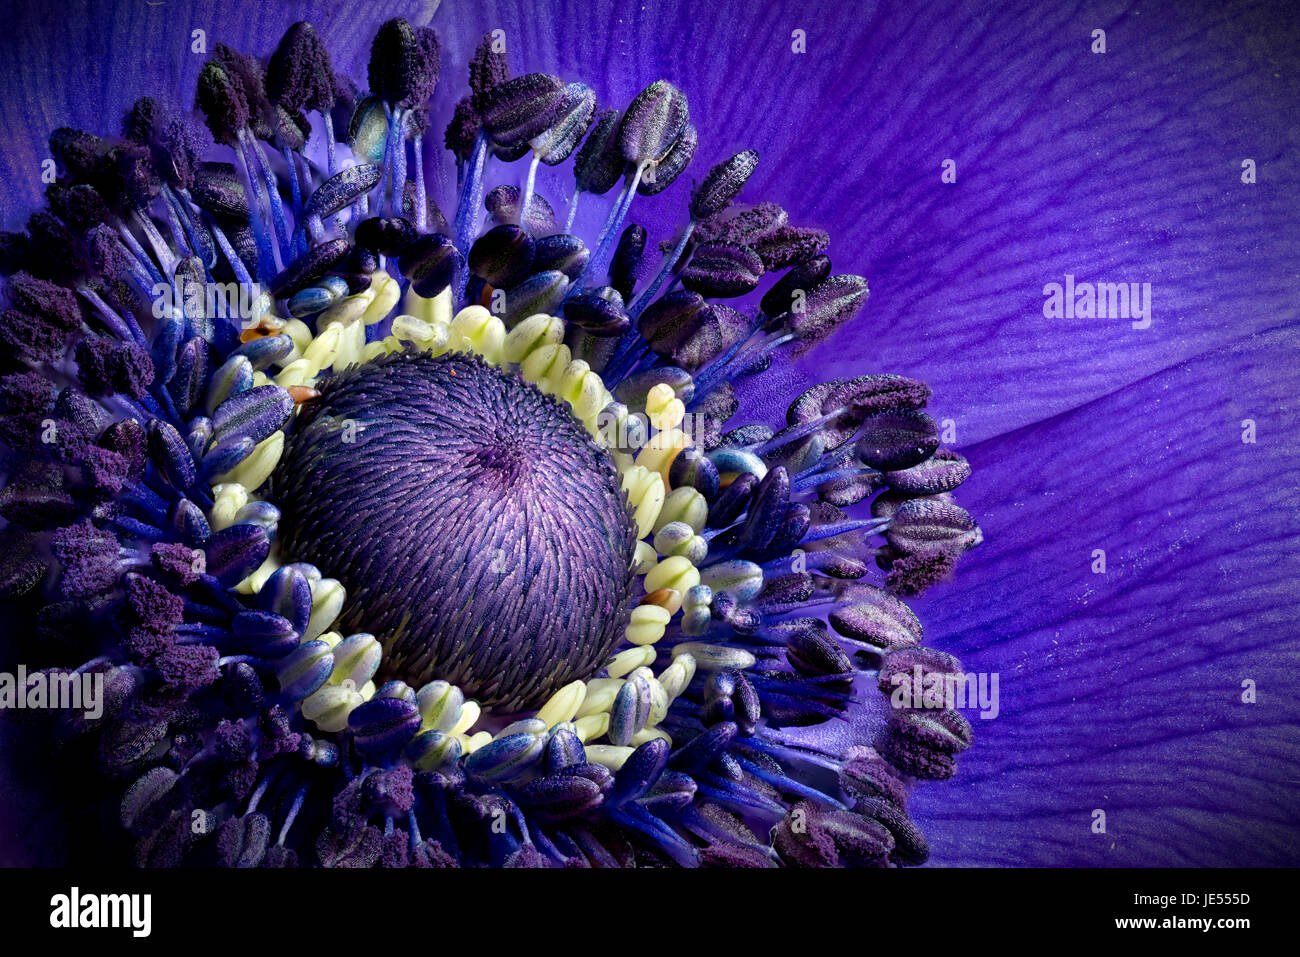 Focus stacking is showing the tiny details of an anemone. - Stock Image